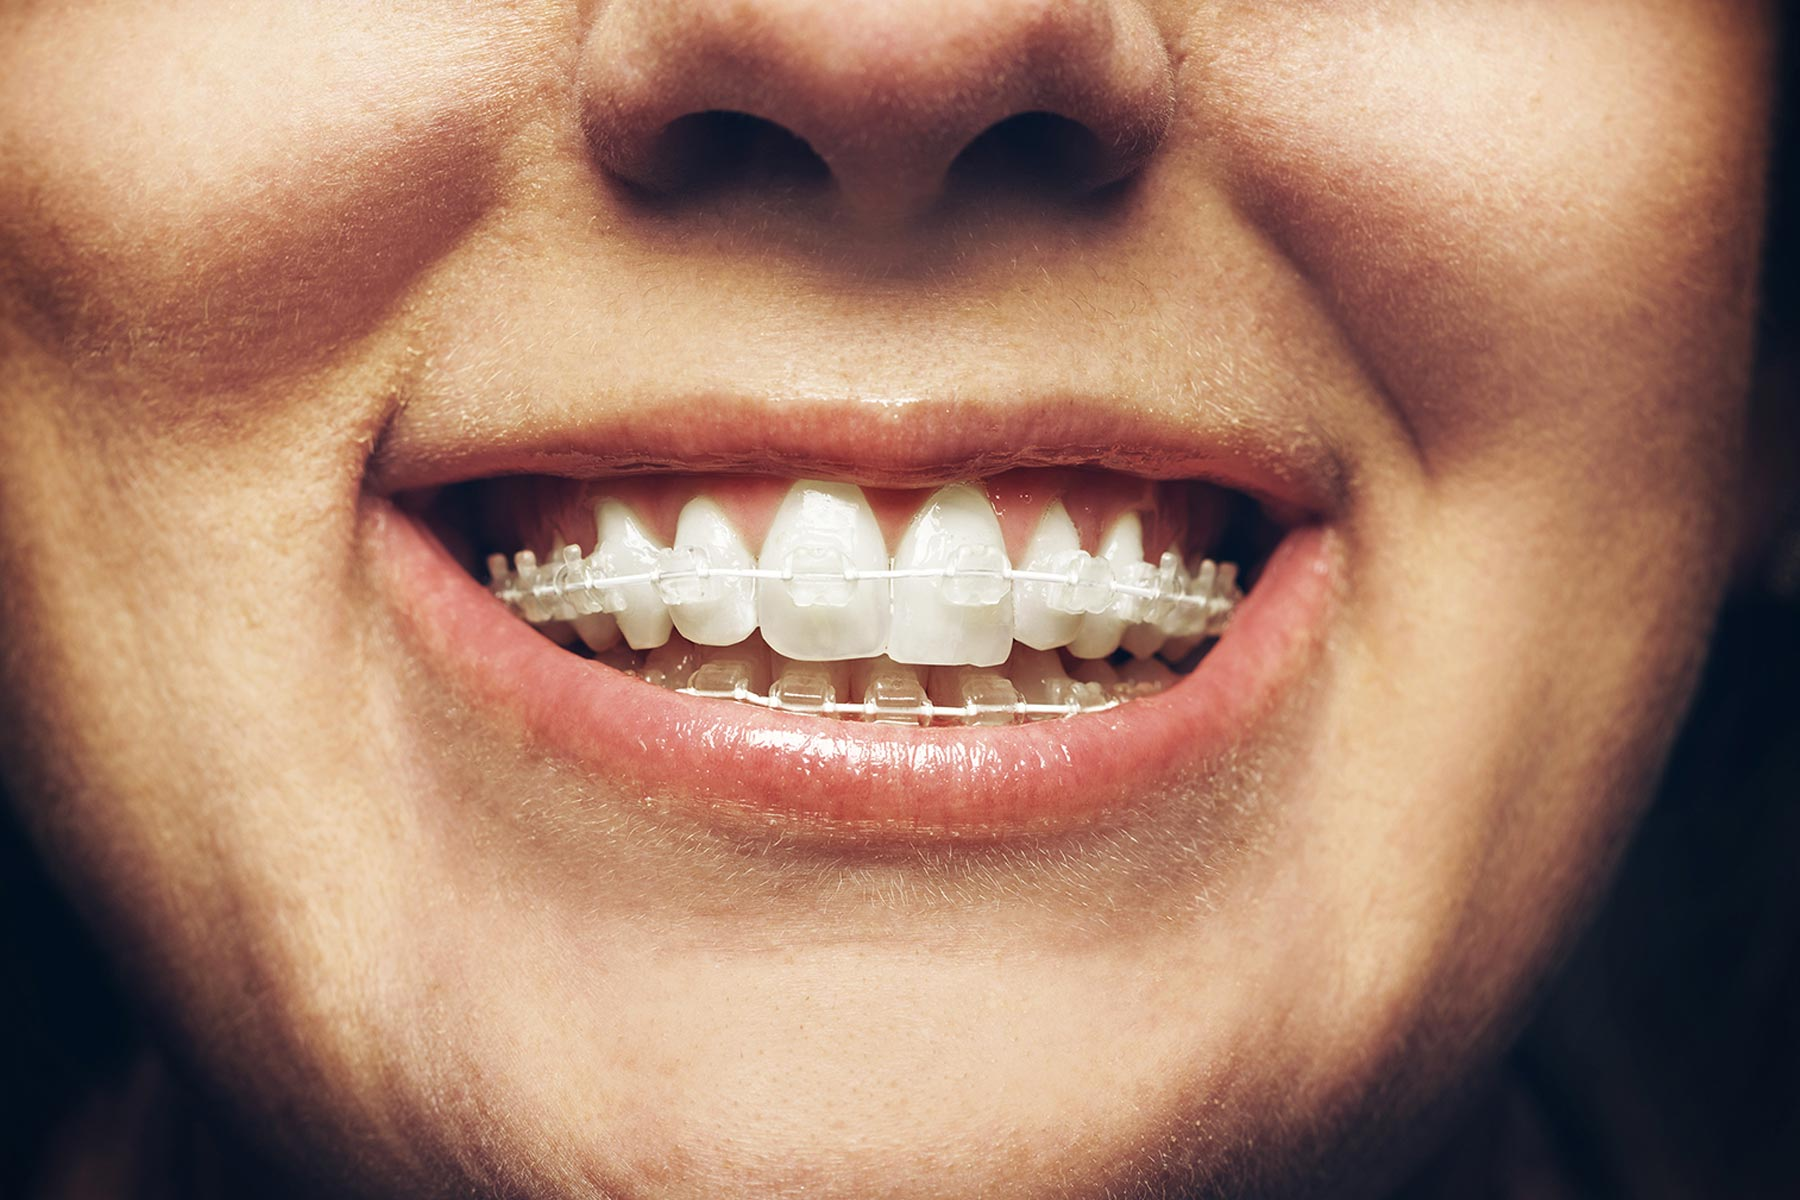 Six Month Smiles braces fitted to smiling patient